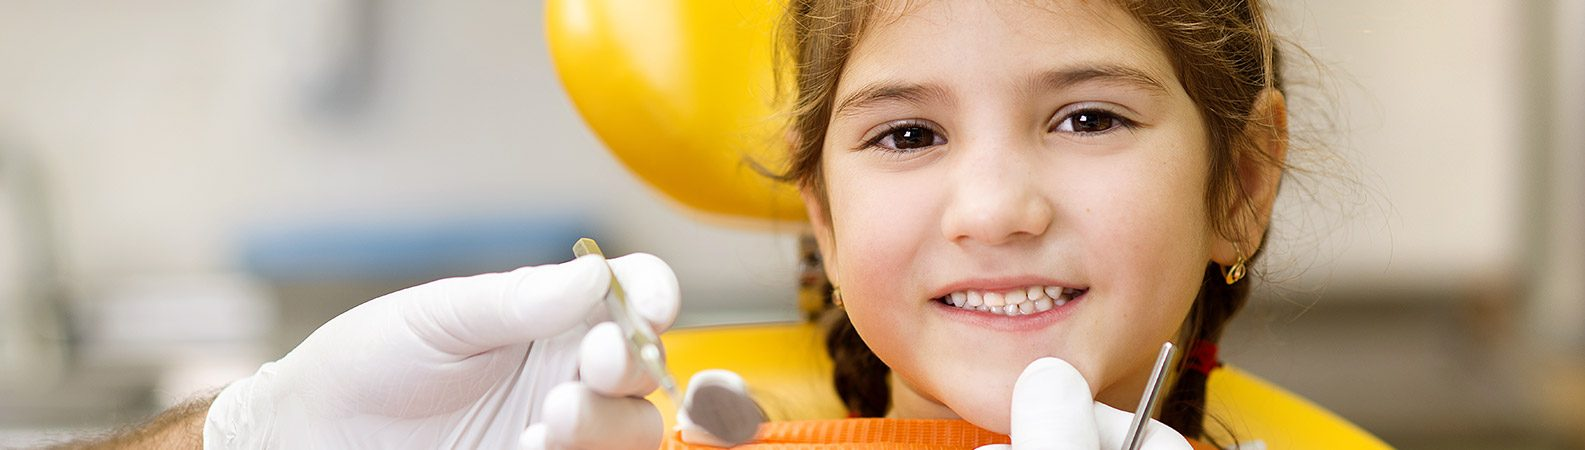 Your Child's First Dental Visit Is Important For Their Future Health